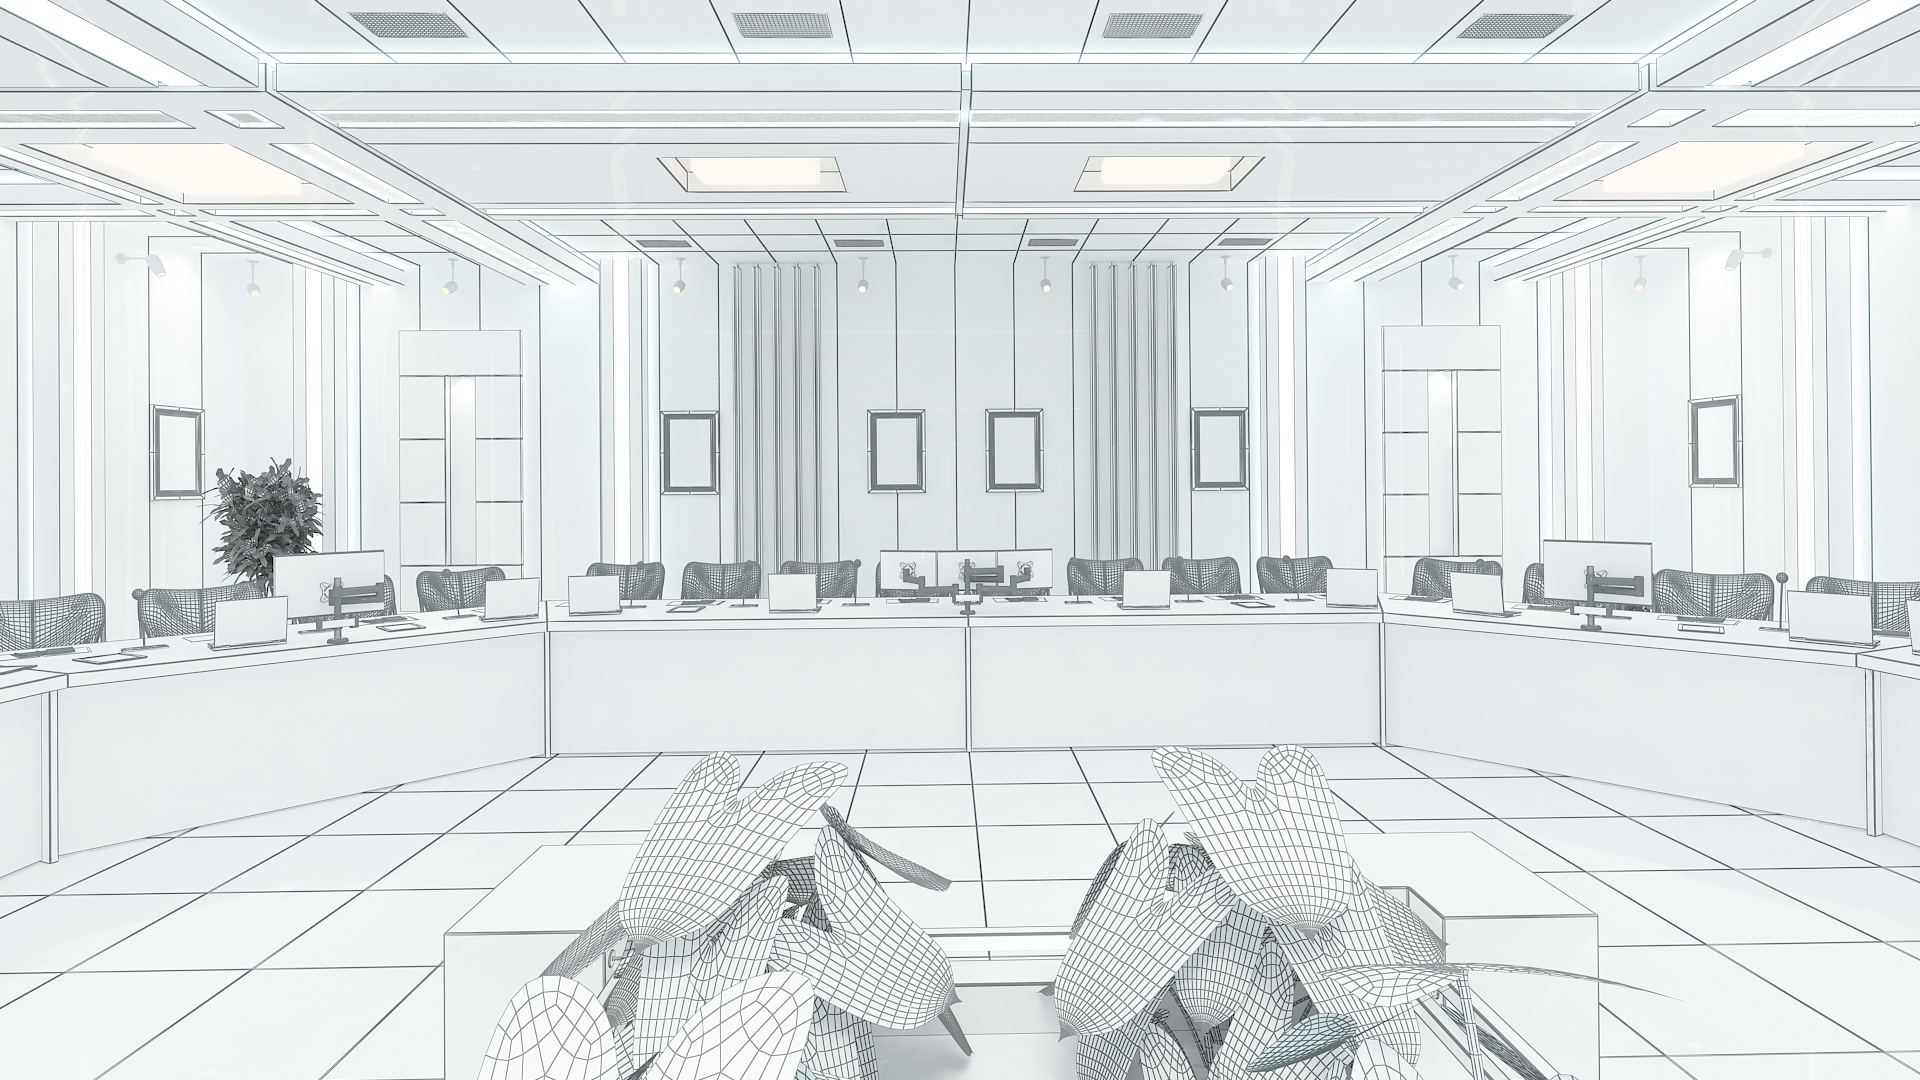 meeting room 1 3d model 3ds max dxf dwg 288136